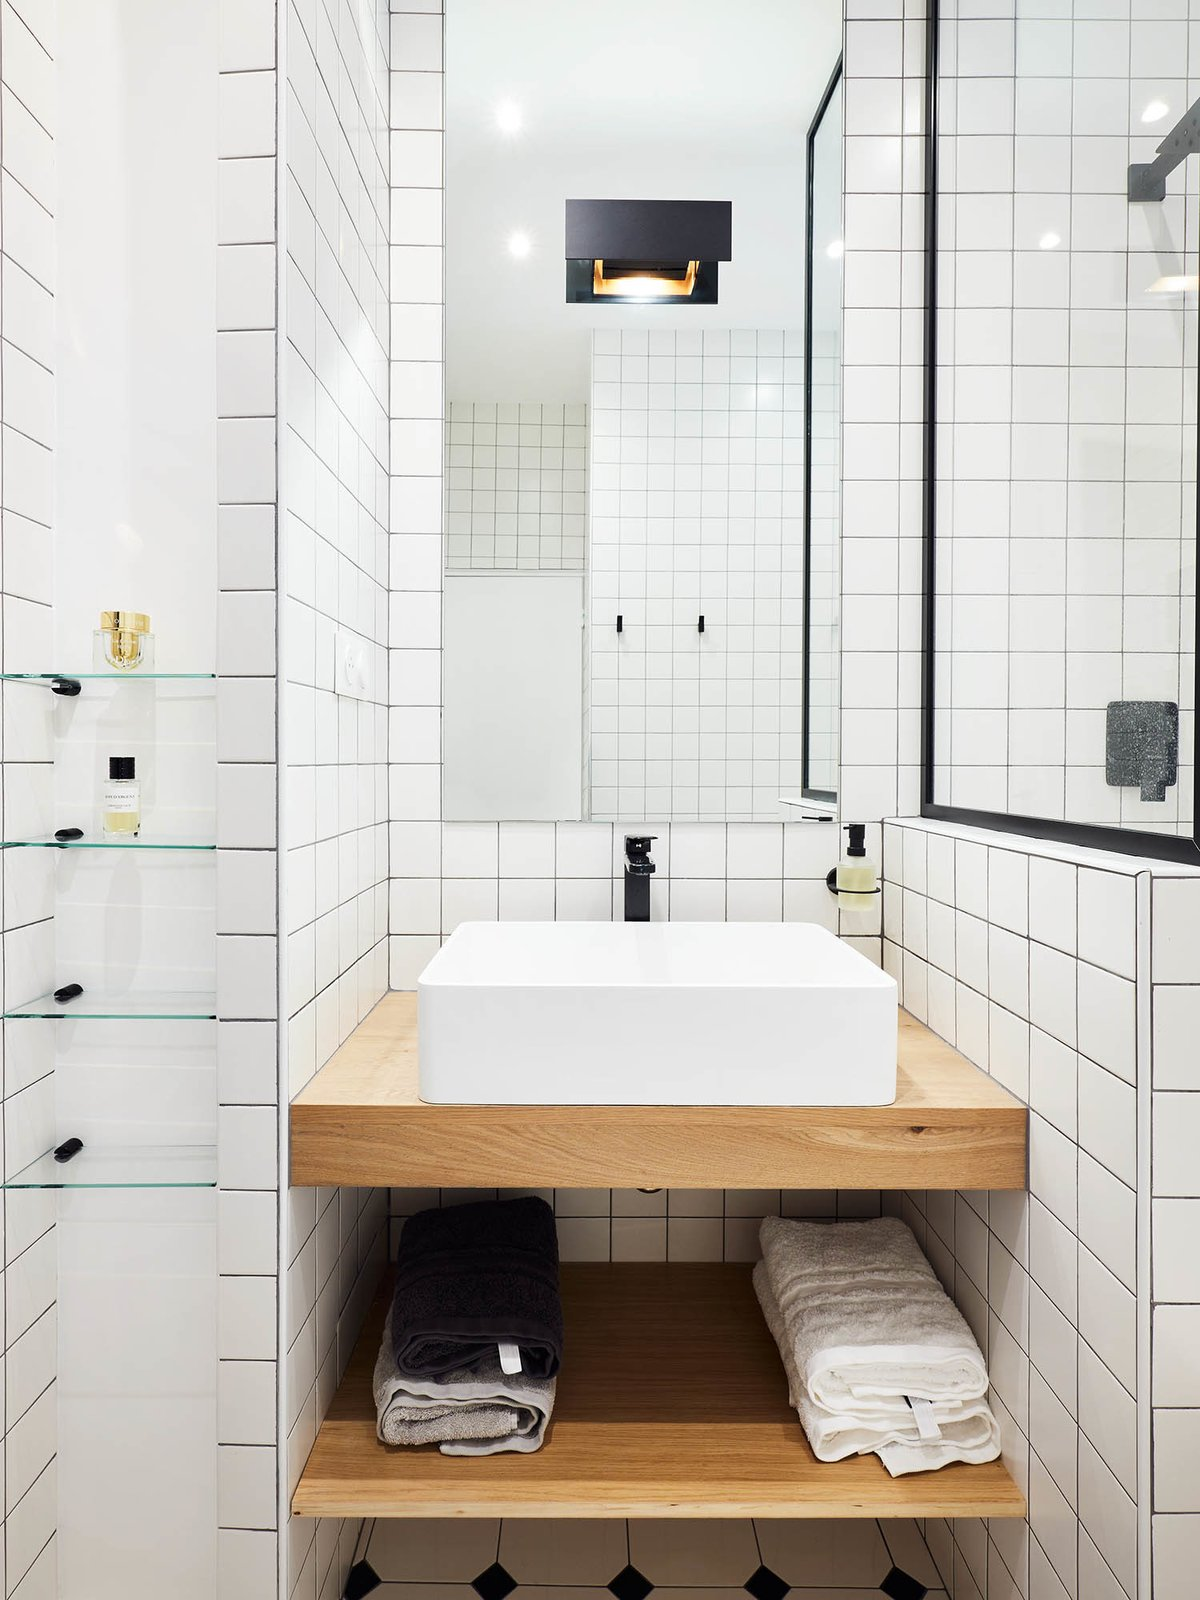 """Bath, Wood, Vessel, Corner, Porcelain Tile, Wall, Porcelain Tile, and Alcove """"I optimized every inch of space in the bathroom,"""" says Petillaut, who employed a black-and-white palette and geometric lines that make the room feel more voluminous.   Bath Corner Vessel Photos from Budget Breakdown: A Muddled Parisian Pad Gets a Sleek Makeover for $117K"""